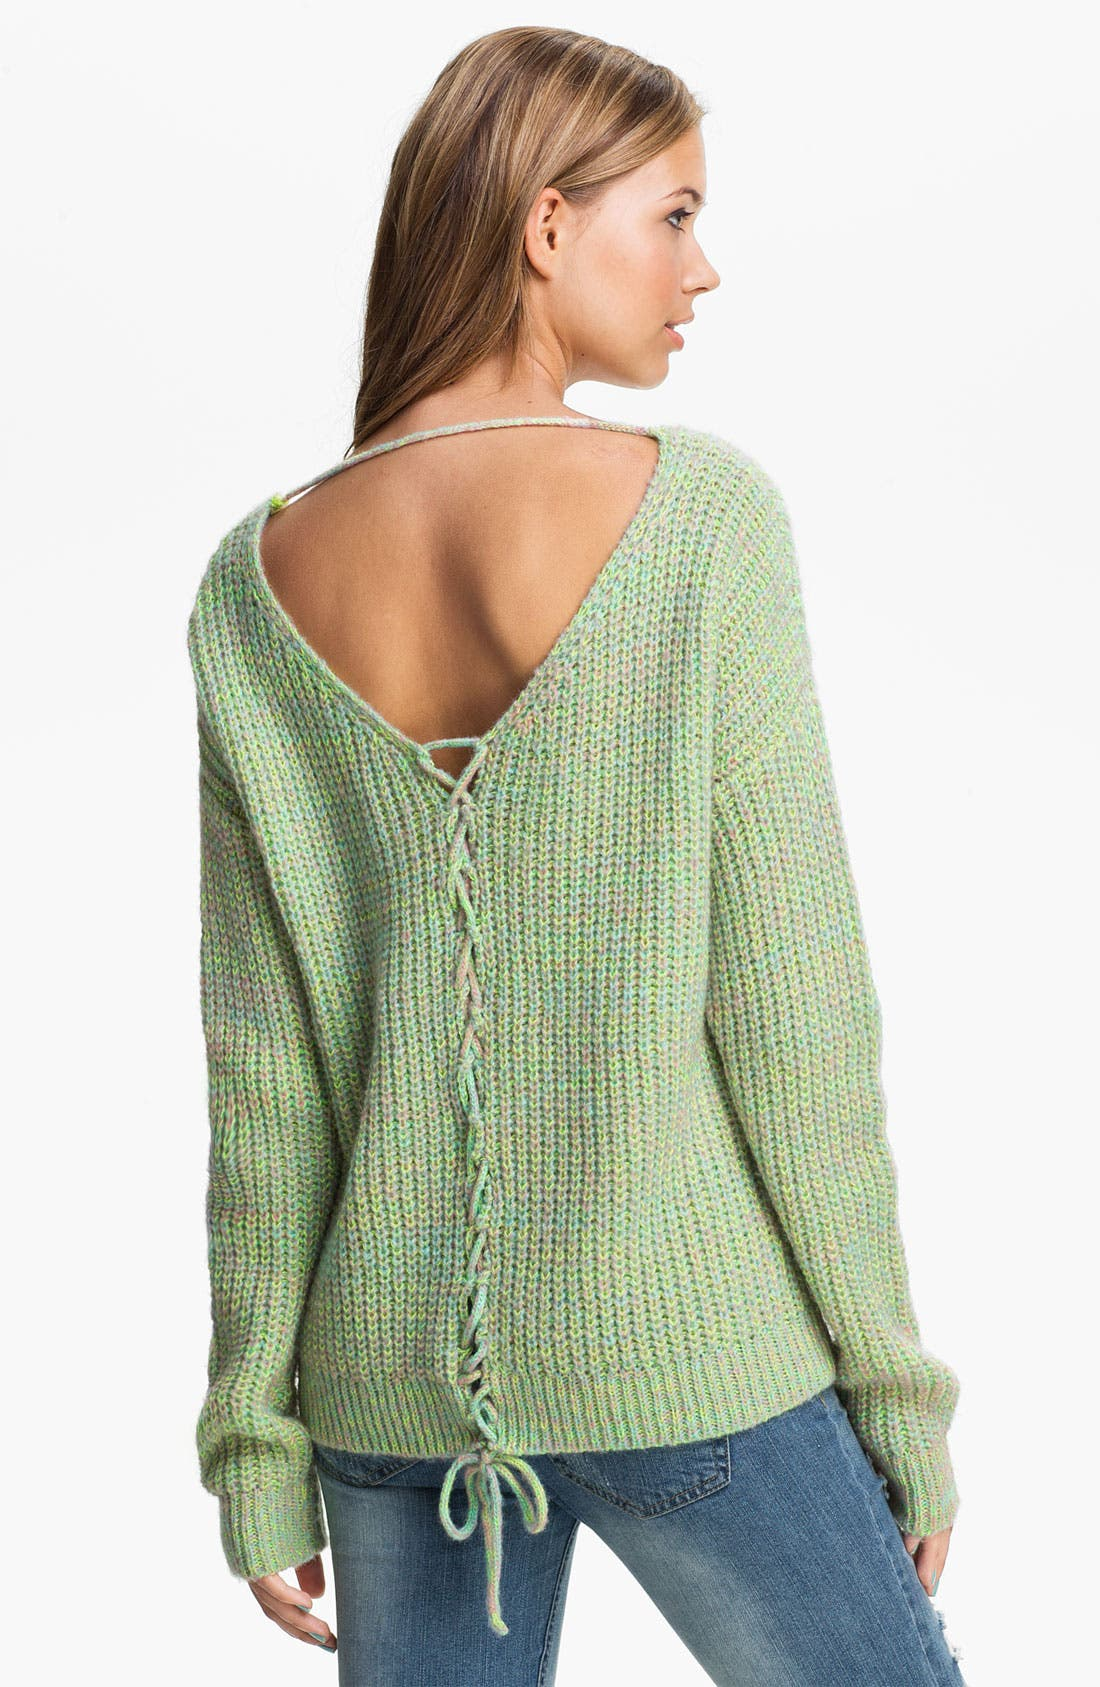 Main Image - Love by Design Lace Back Sweater (Juniors)